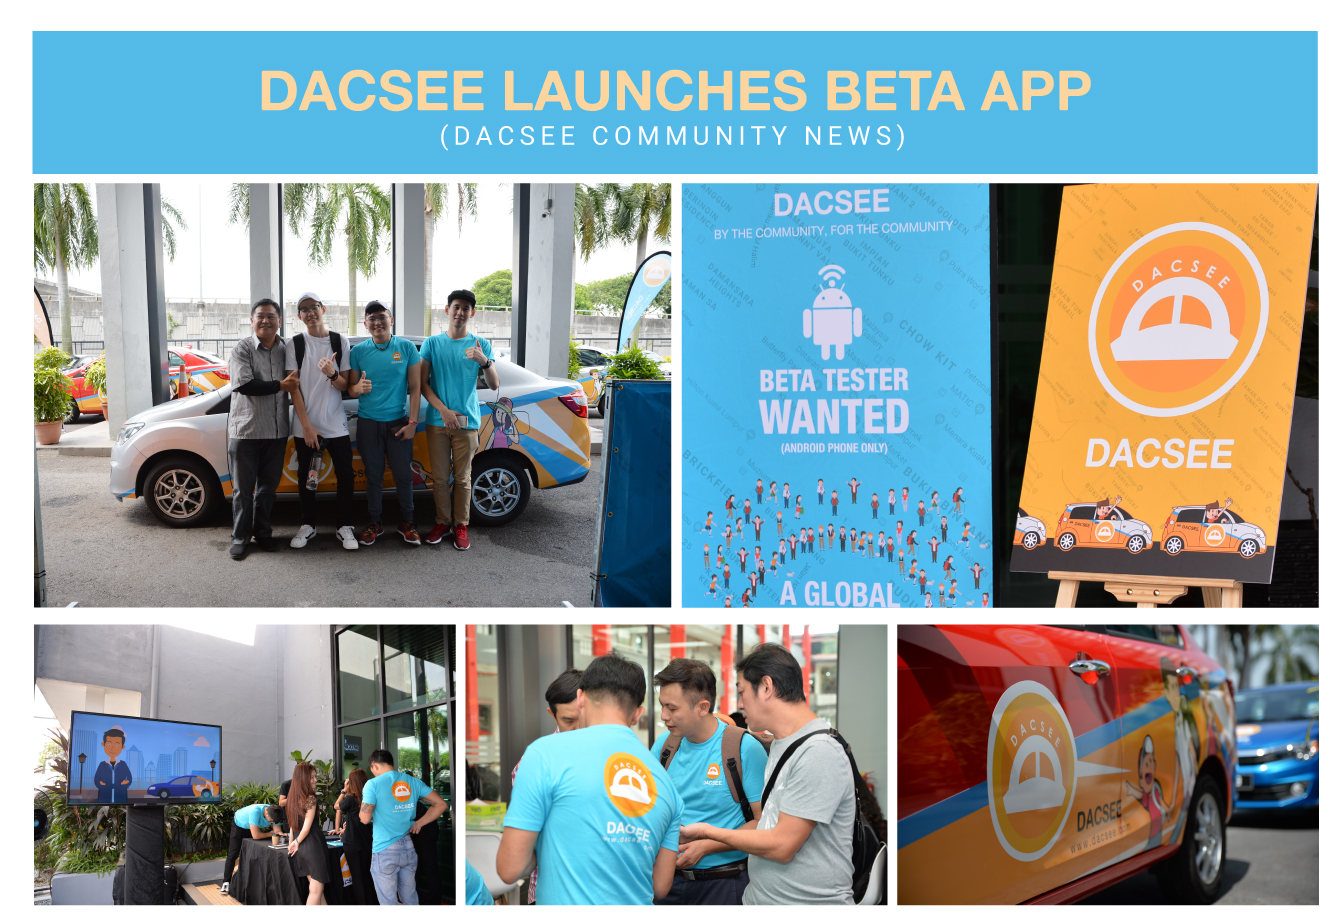 DACSEE LAUNCHES BETA APP